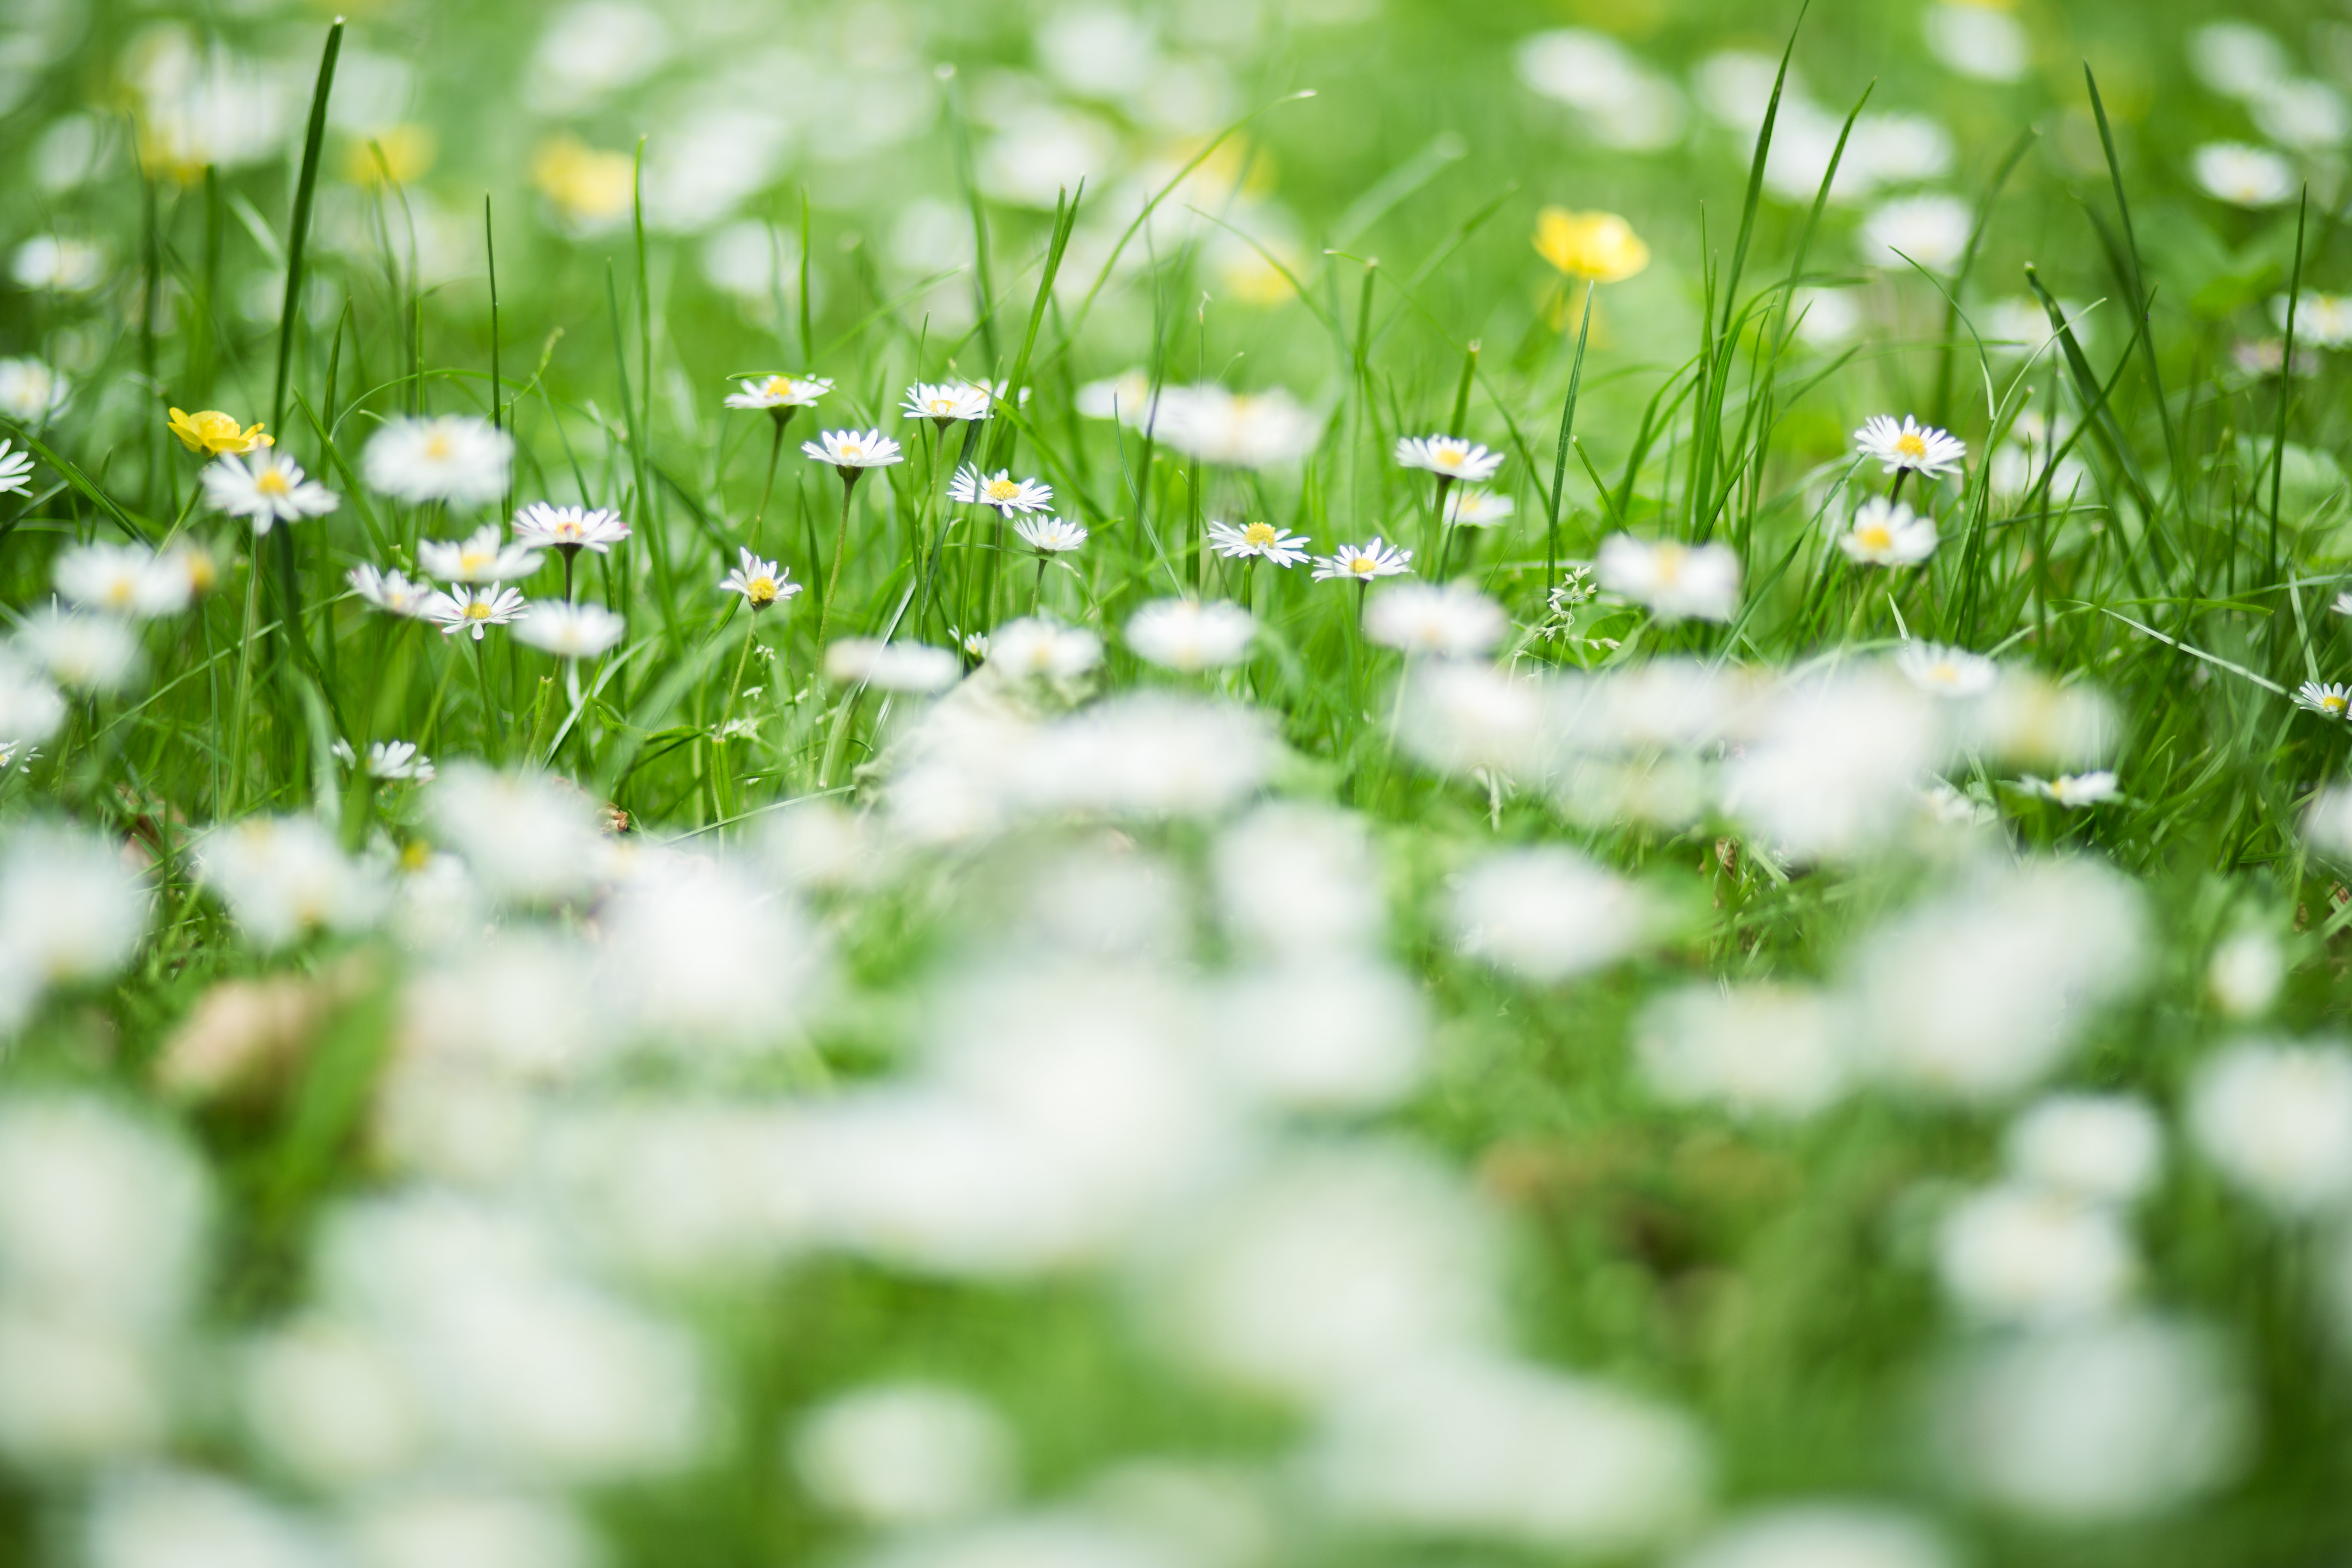 Field of daisies, daisies, flowers, white, green, nature, plants